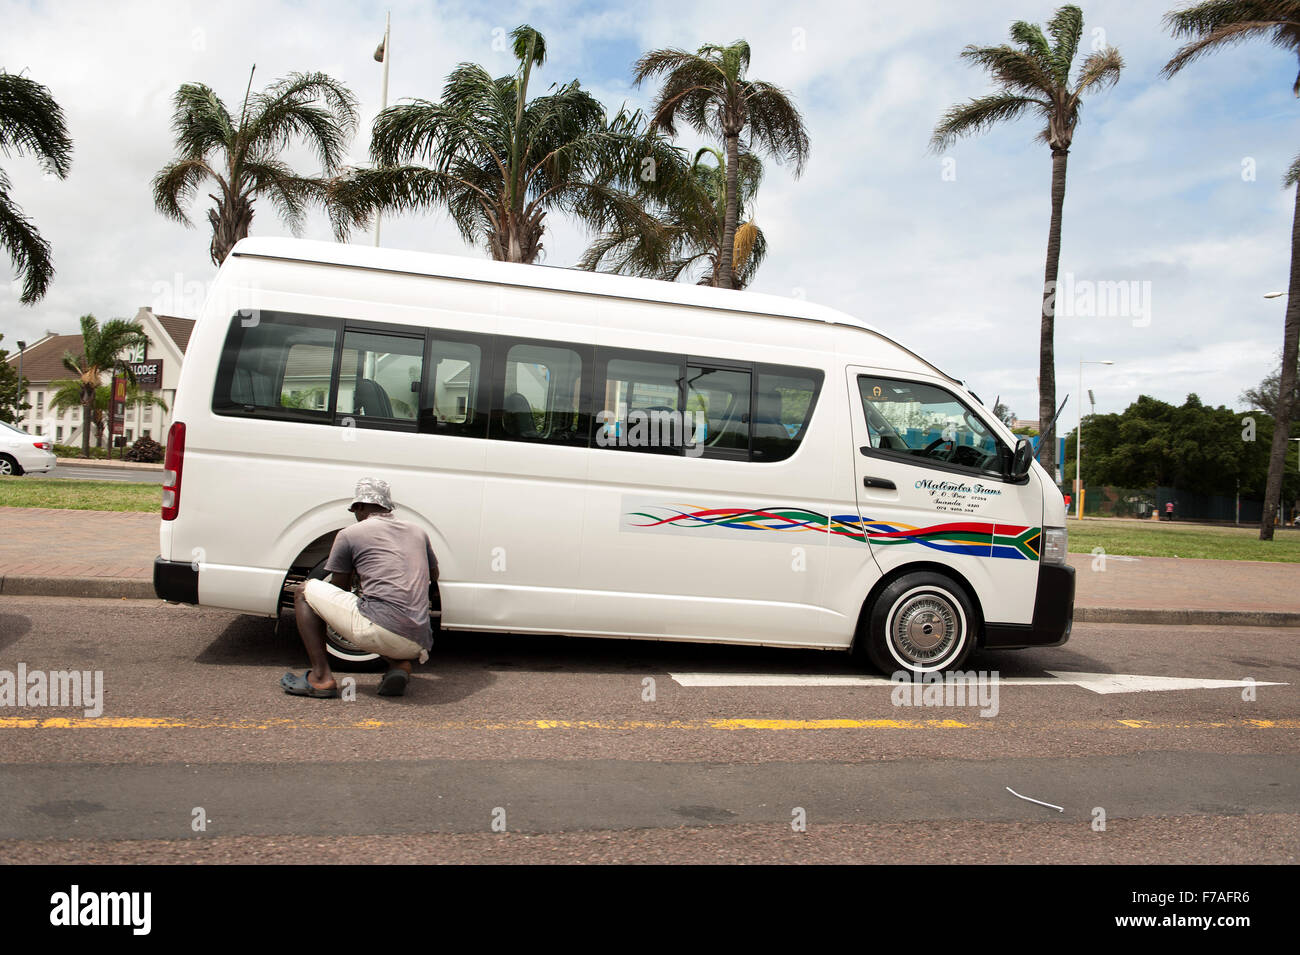 A taxi driver repairs his minibus taxi in the Warwick Triangle taxi stand in Durban South Africa - Stock Image